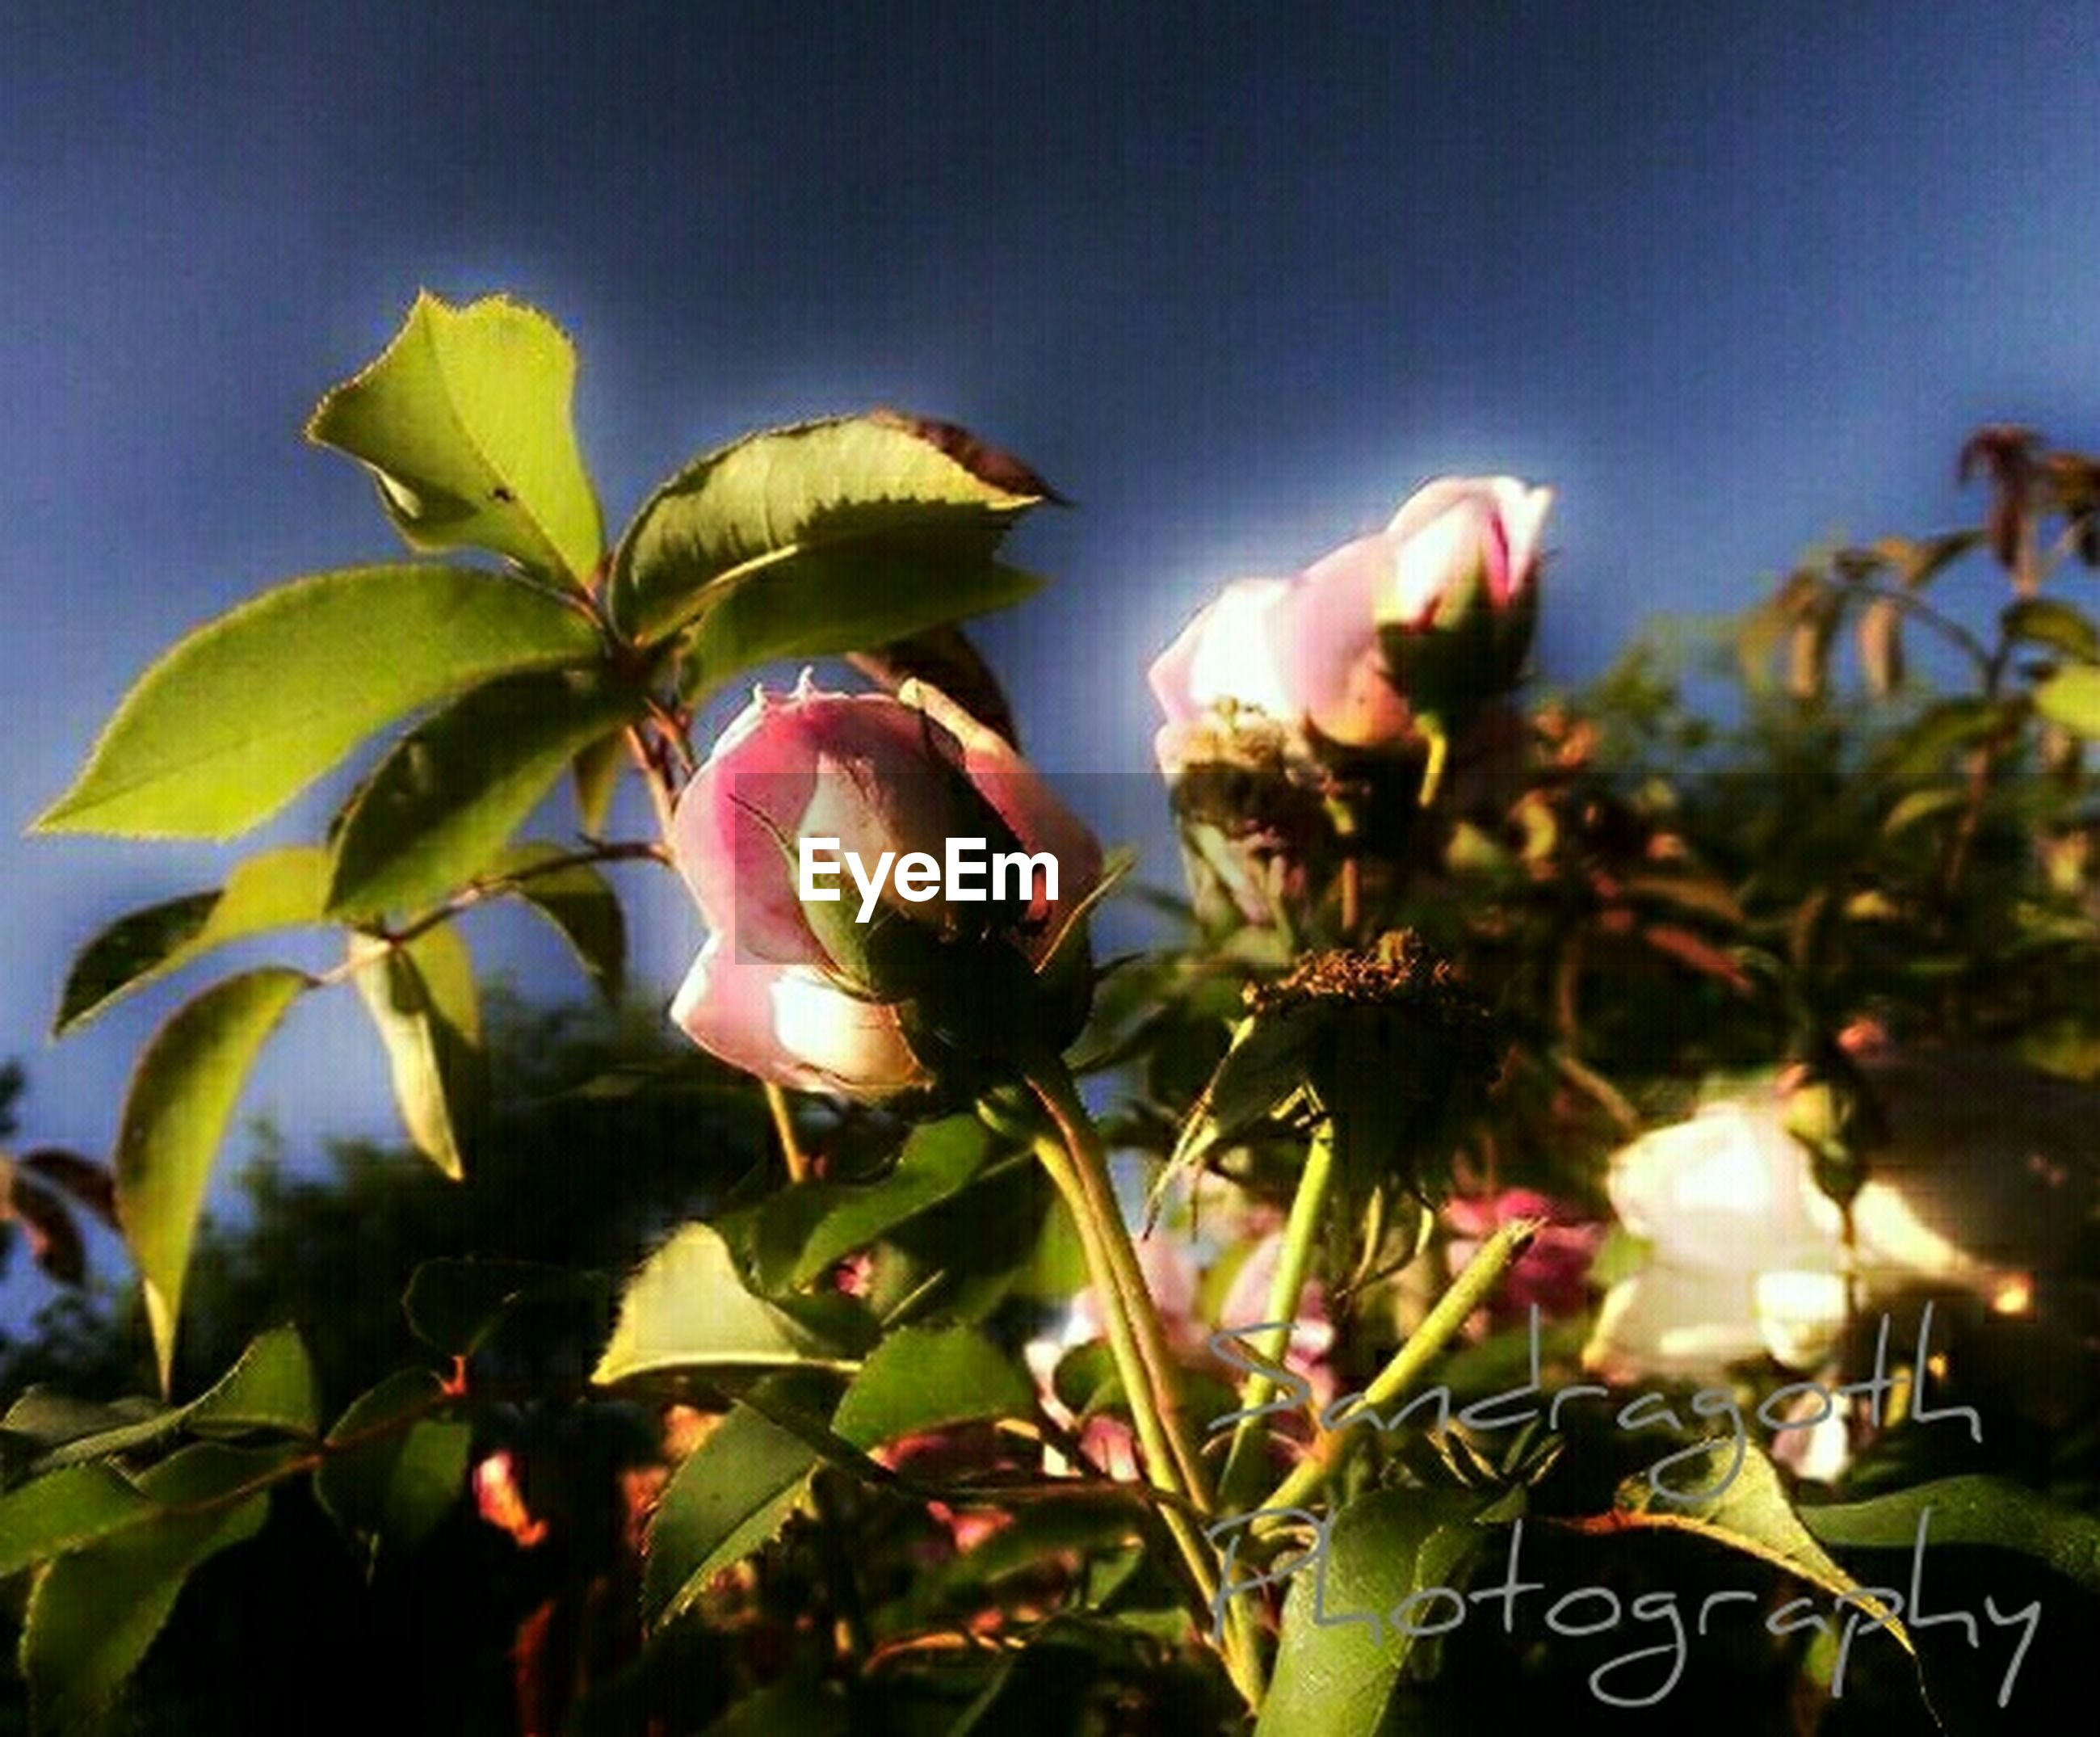 flower, growth, freshness, leaf, plant, fragility, petal, beauty in nature, flower head, nature, stem, close-up, blooming, bud, low angle view, pink color, in bloom, focus on foreground, sky, blue